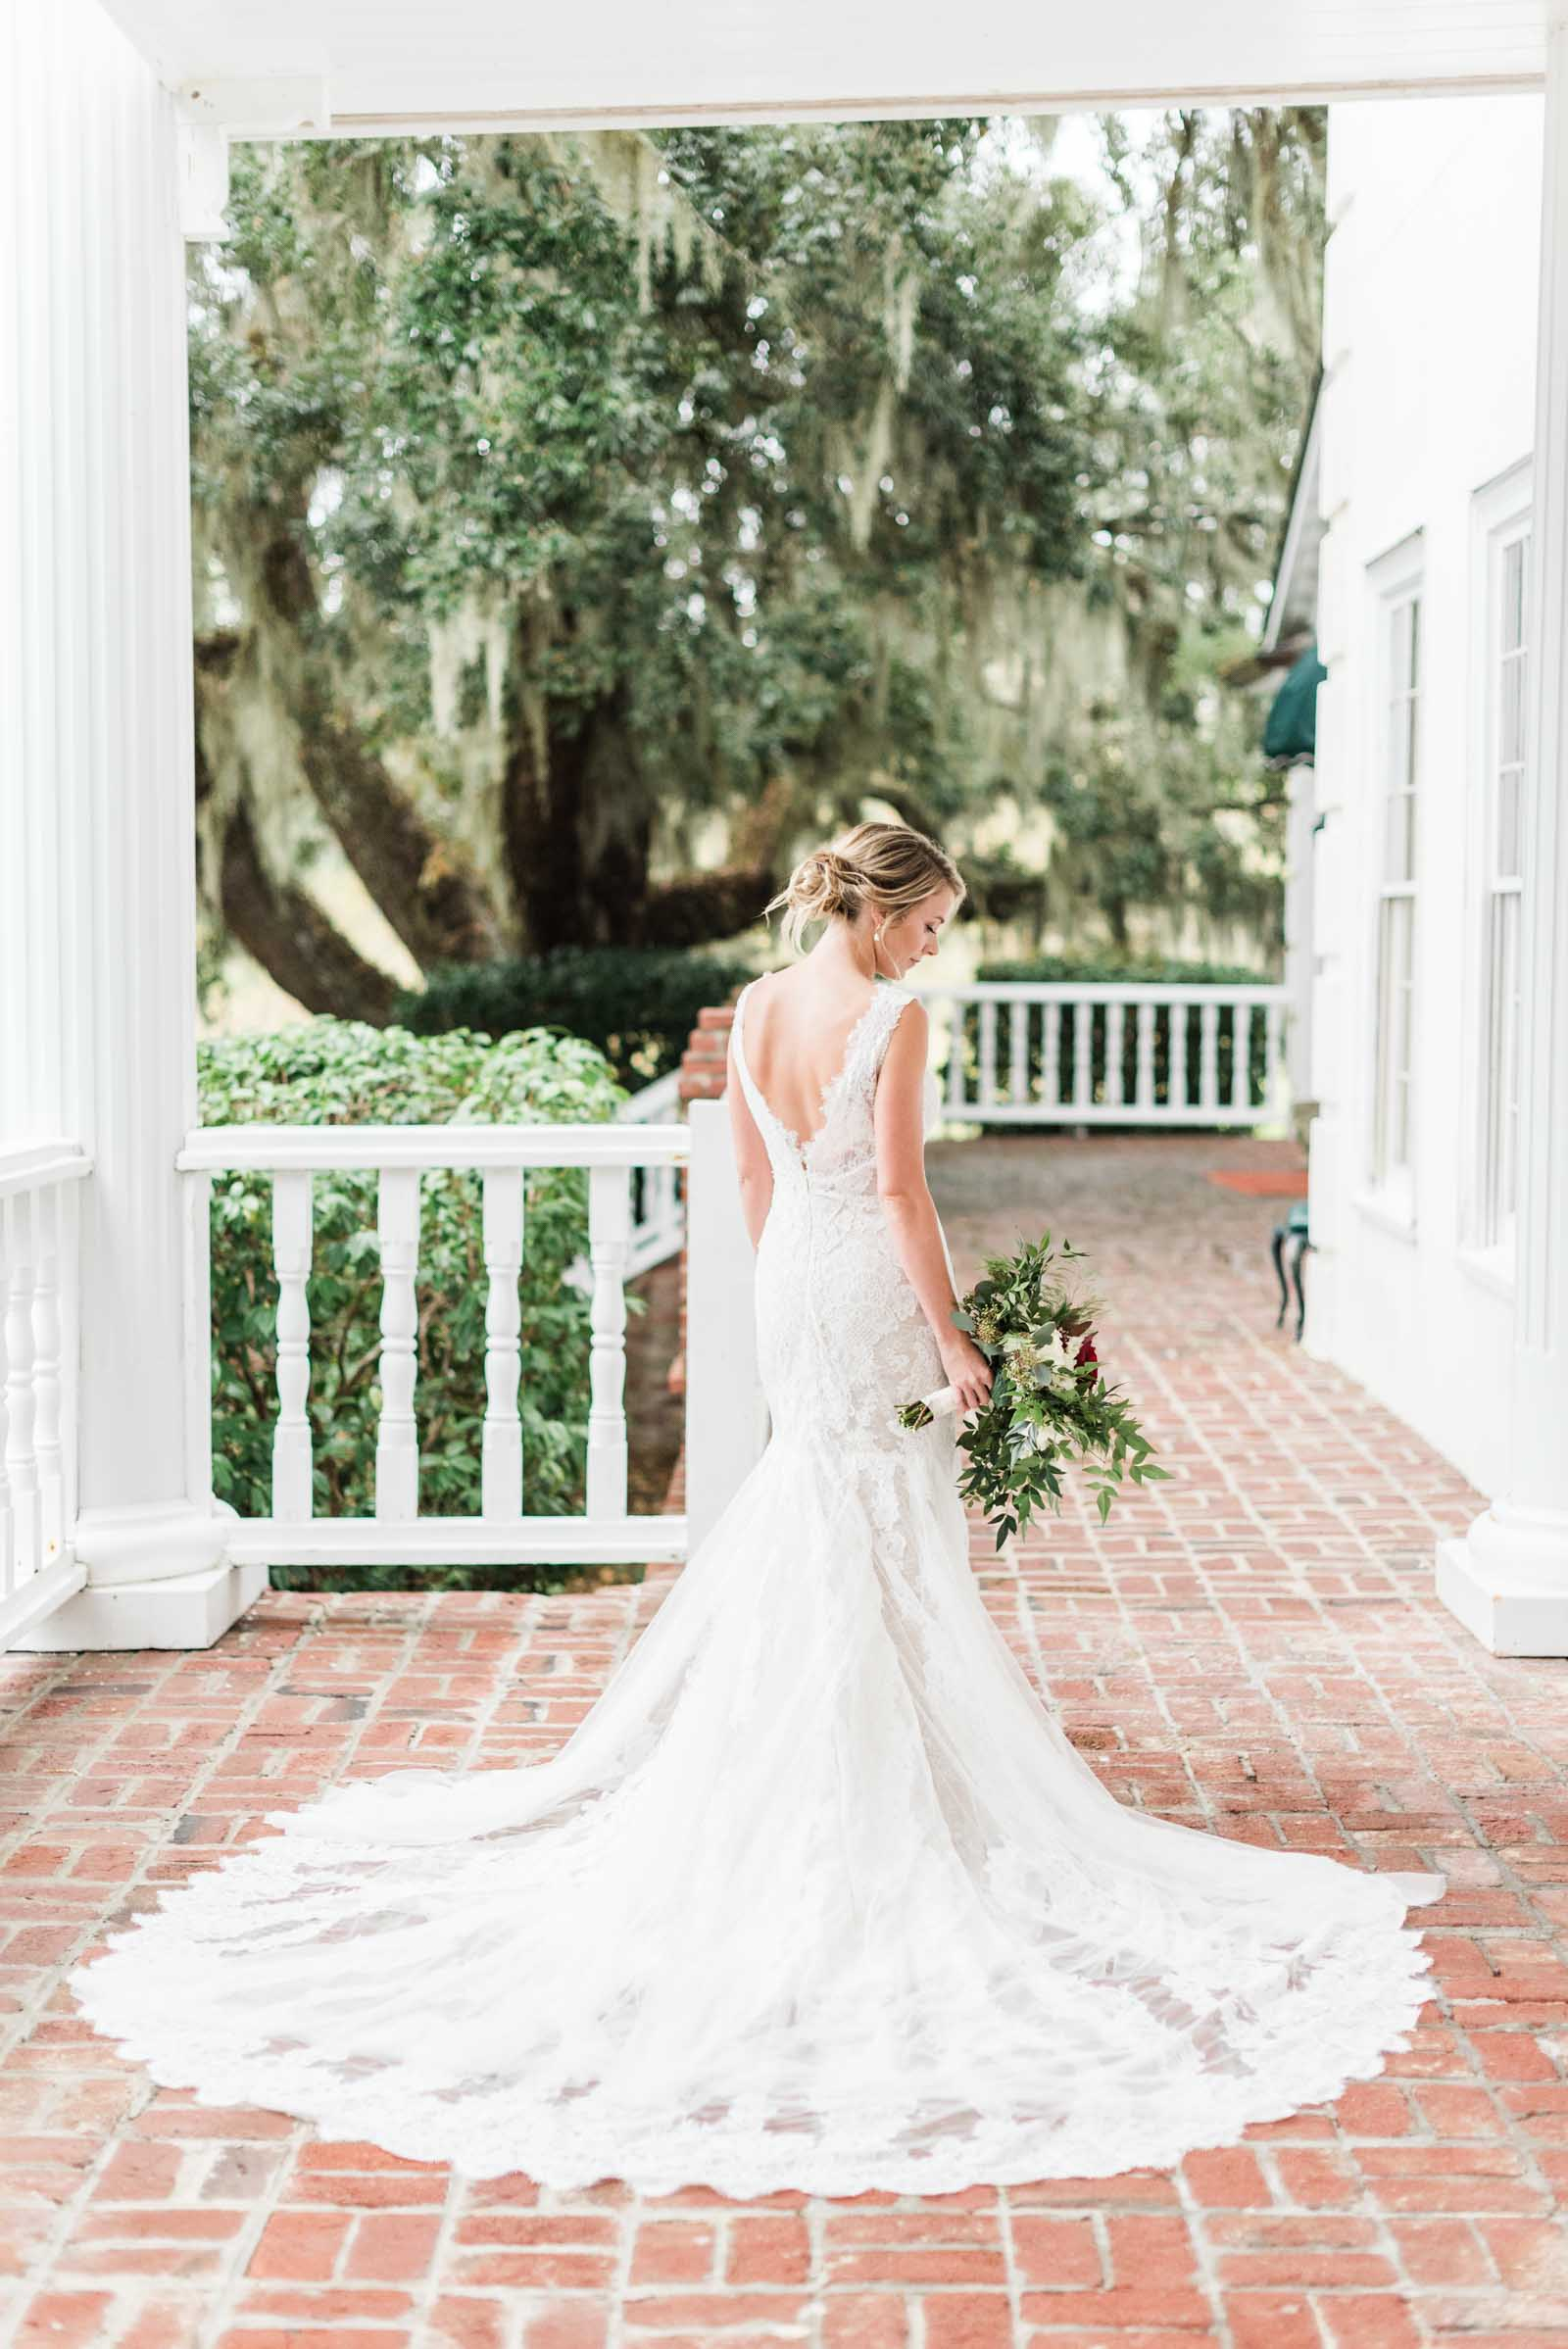 Wedding at Heritage Plantation in Pawley's Island_Markie Walden Photo-23.jpg